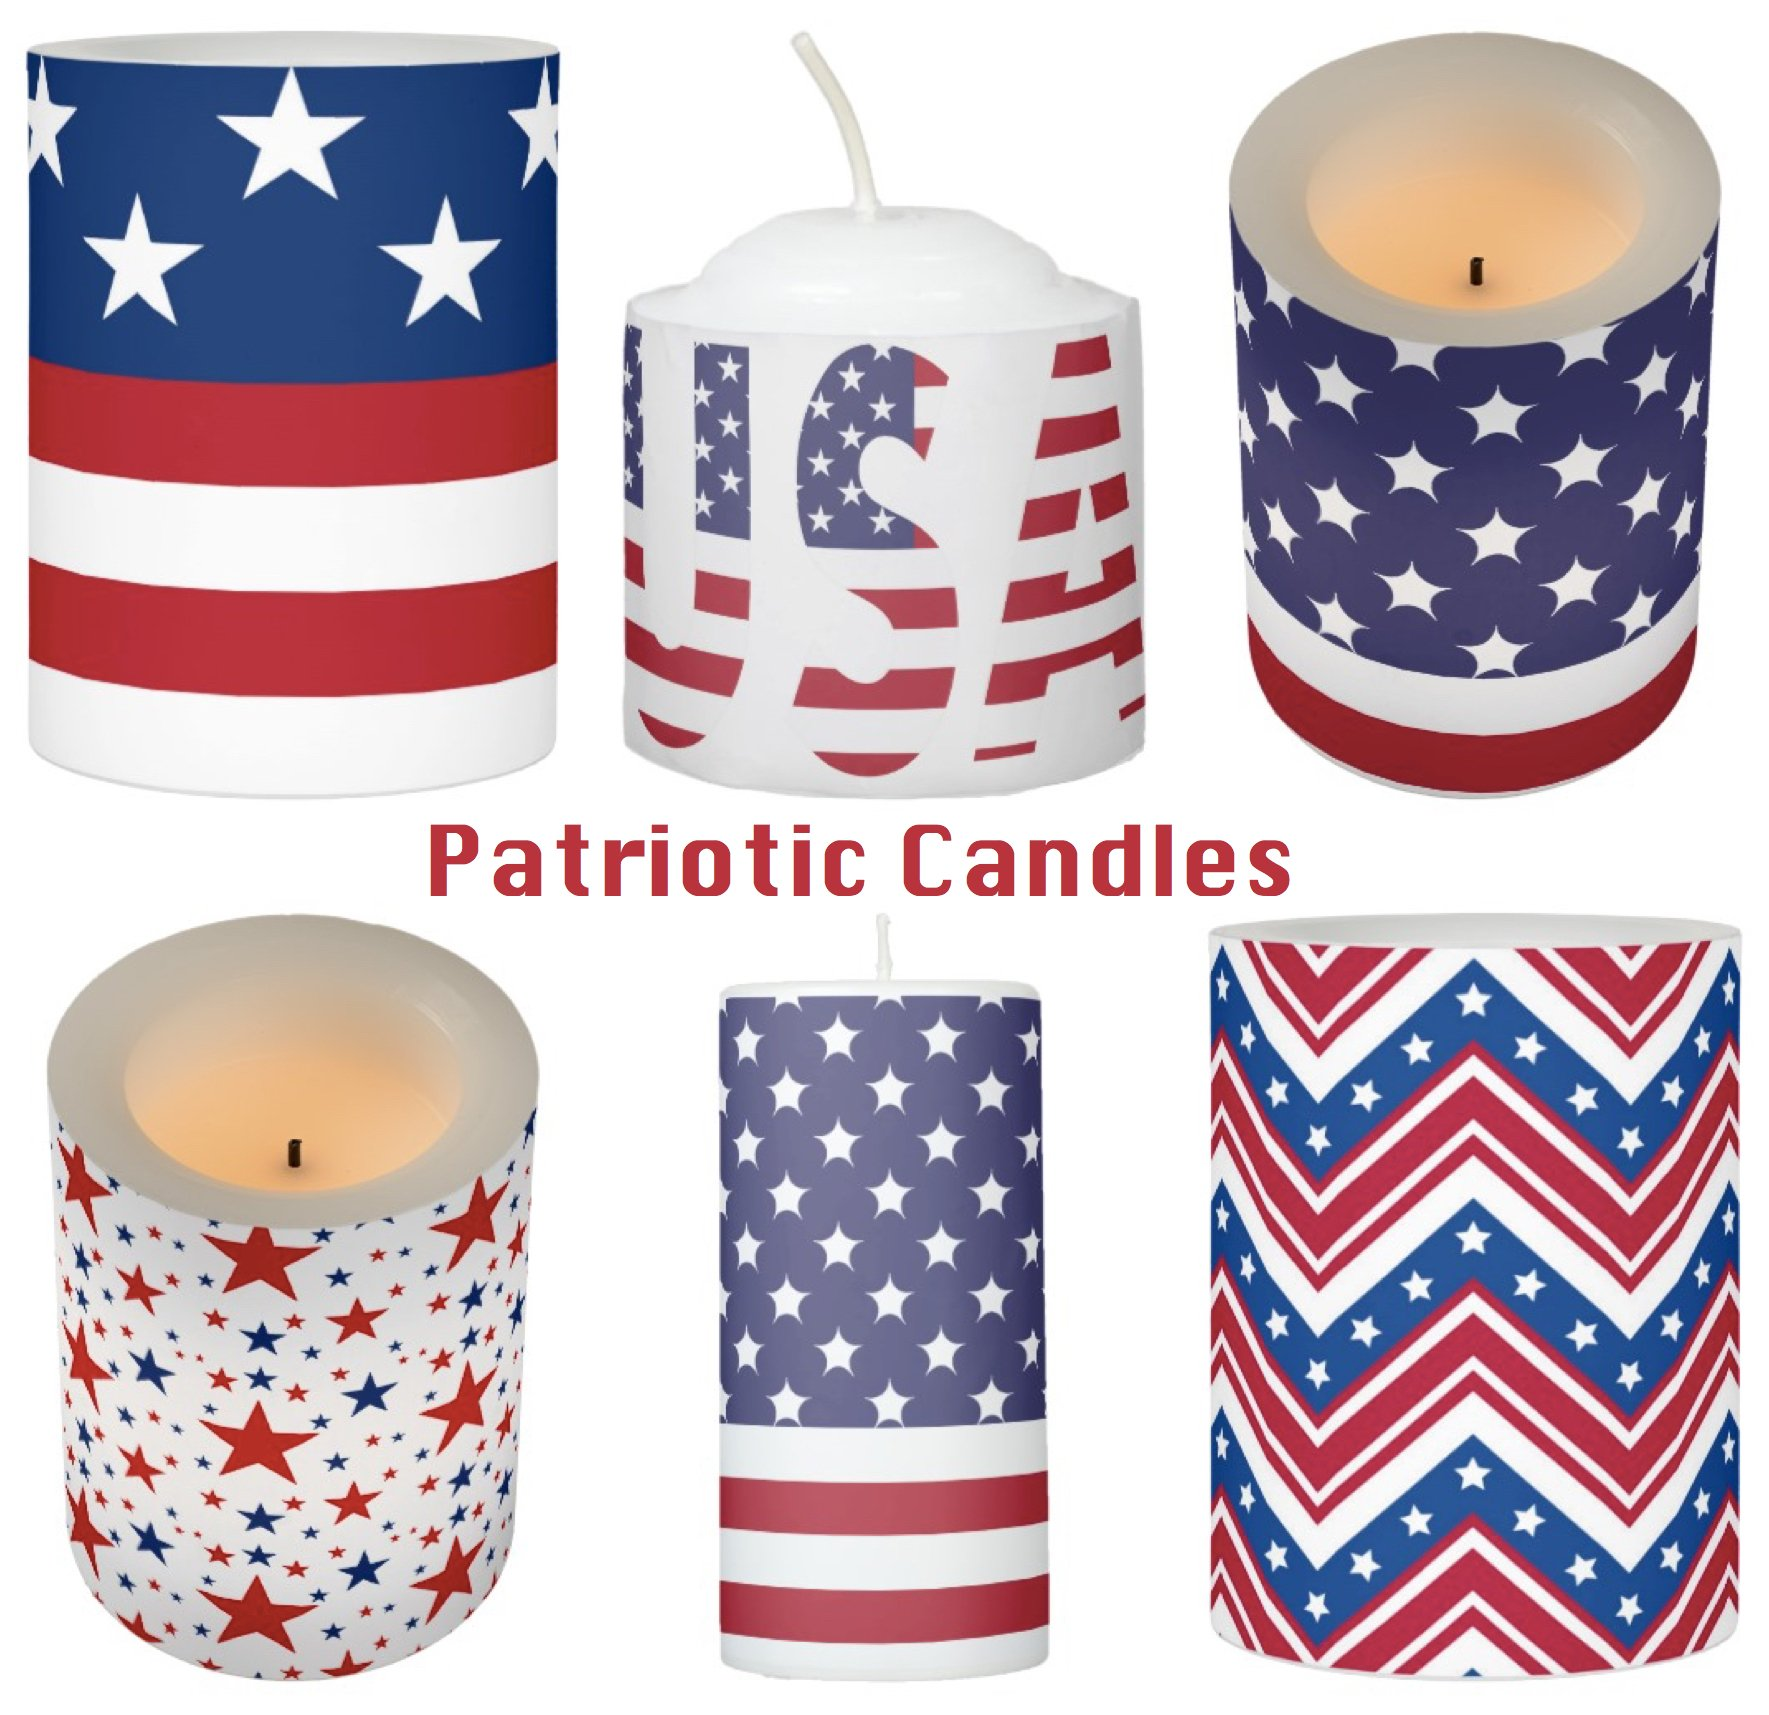 Patriotic Candles for Political Events